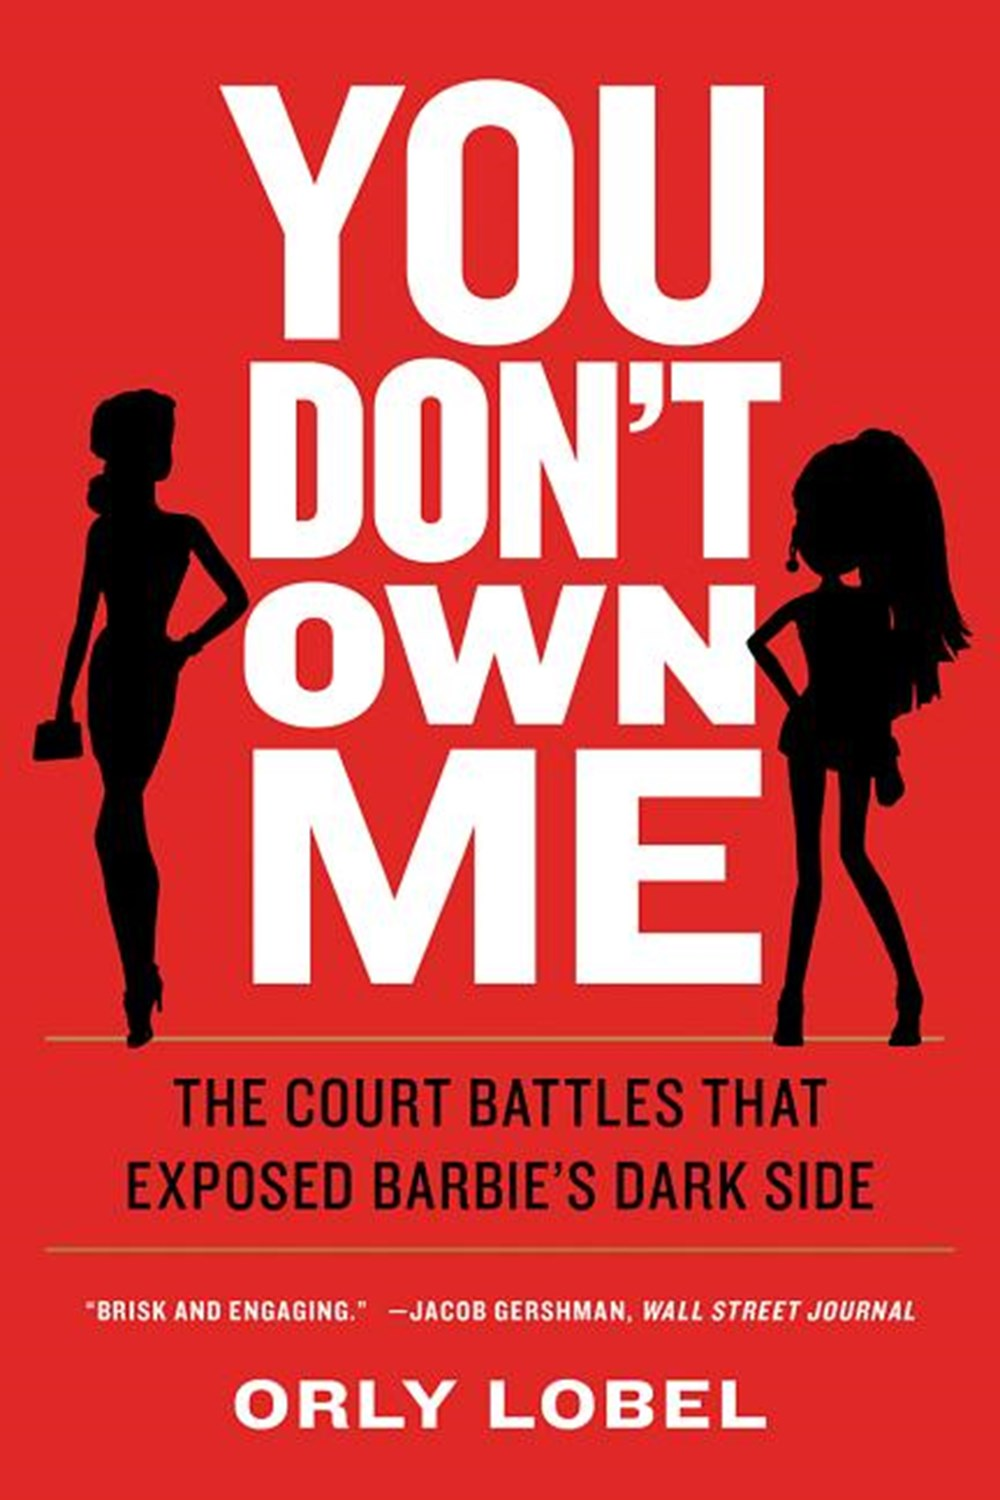 You Don't Own Me How Mattel V. MGA Entertainment Exposed Barbie's Dark Side